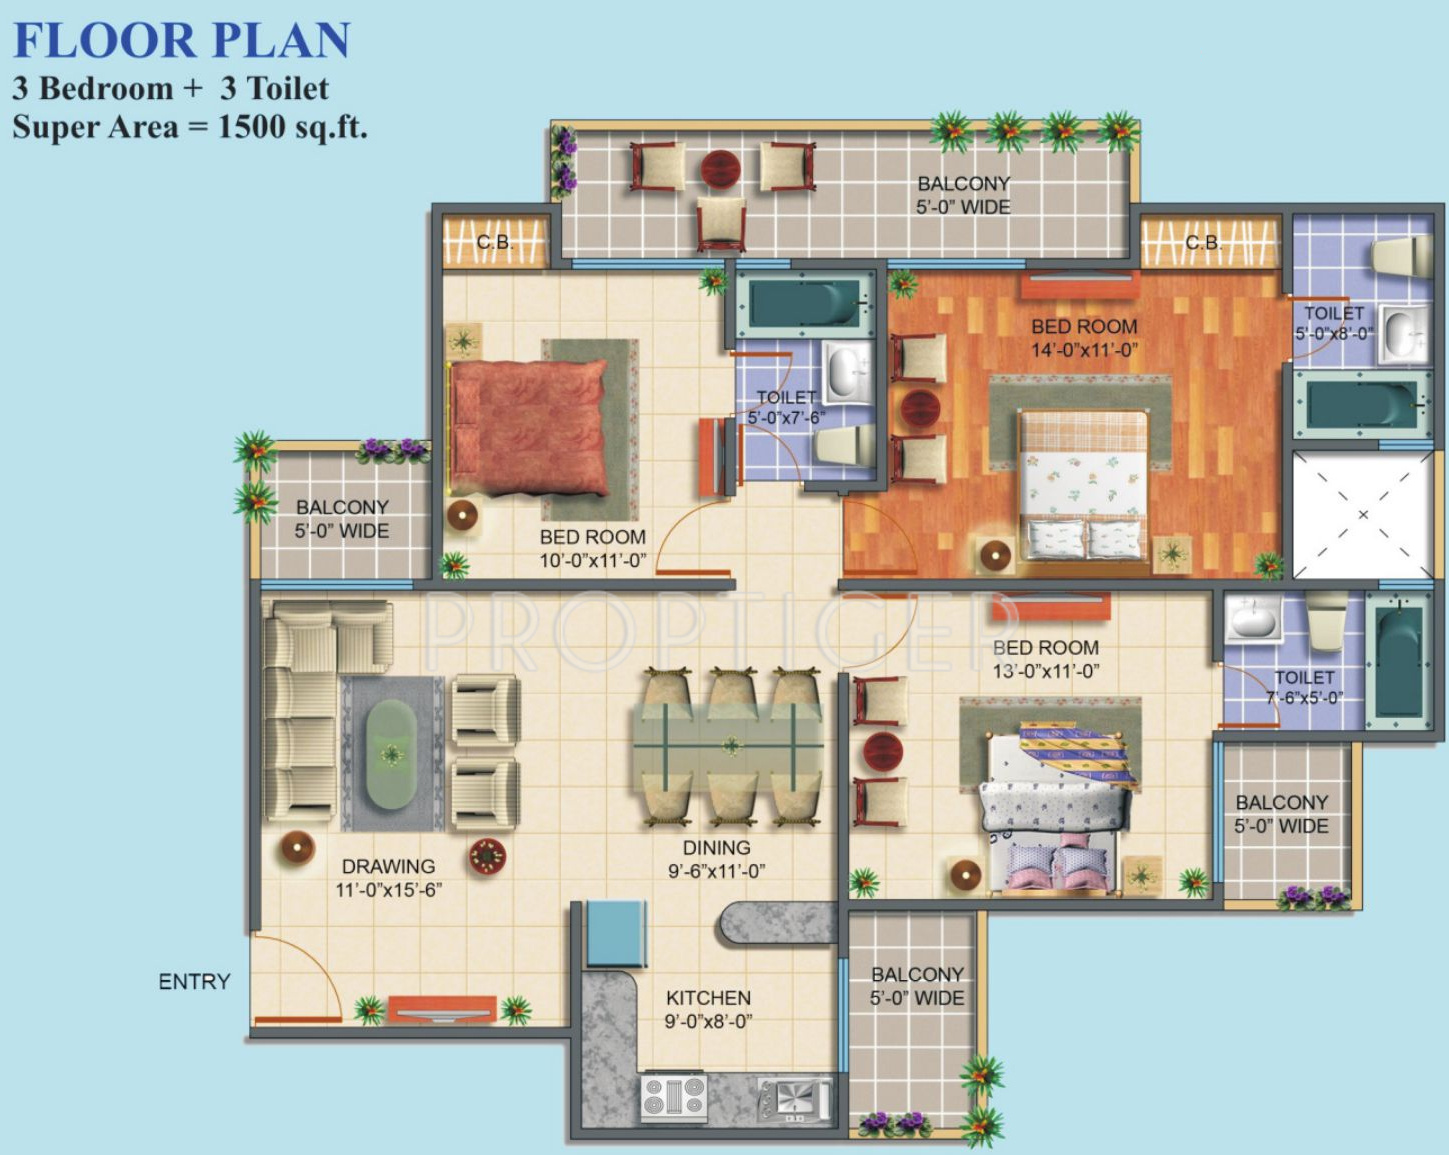 White House Oval Office Floor Plan House Plans 65550